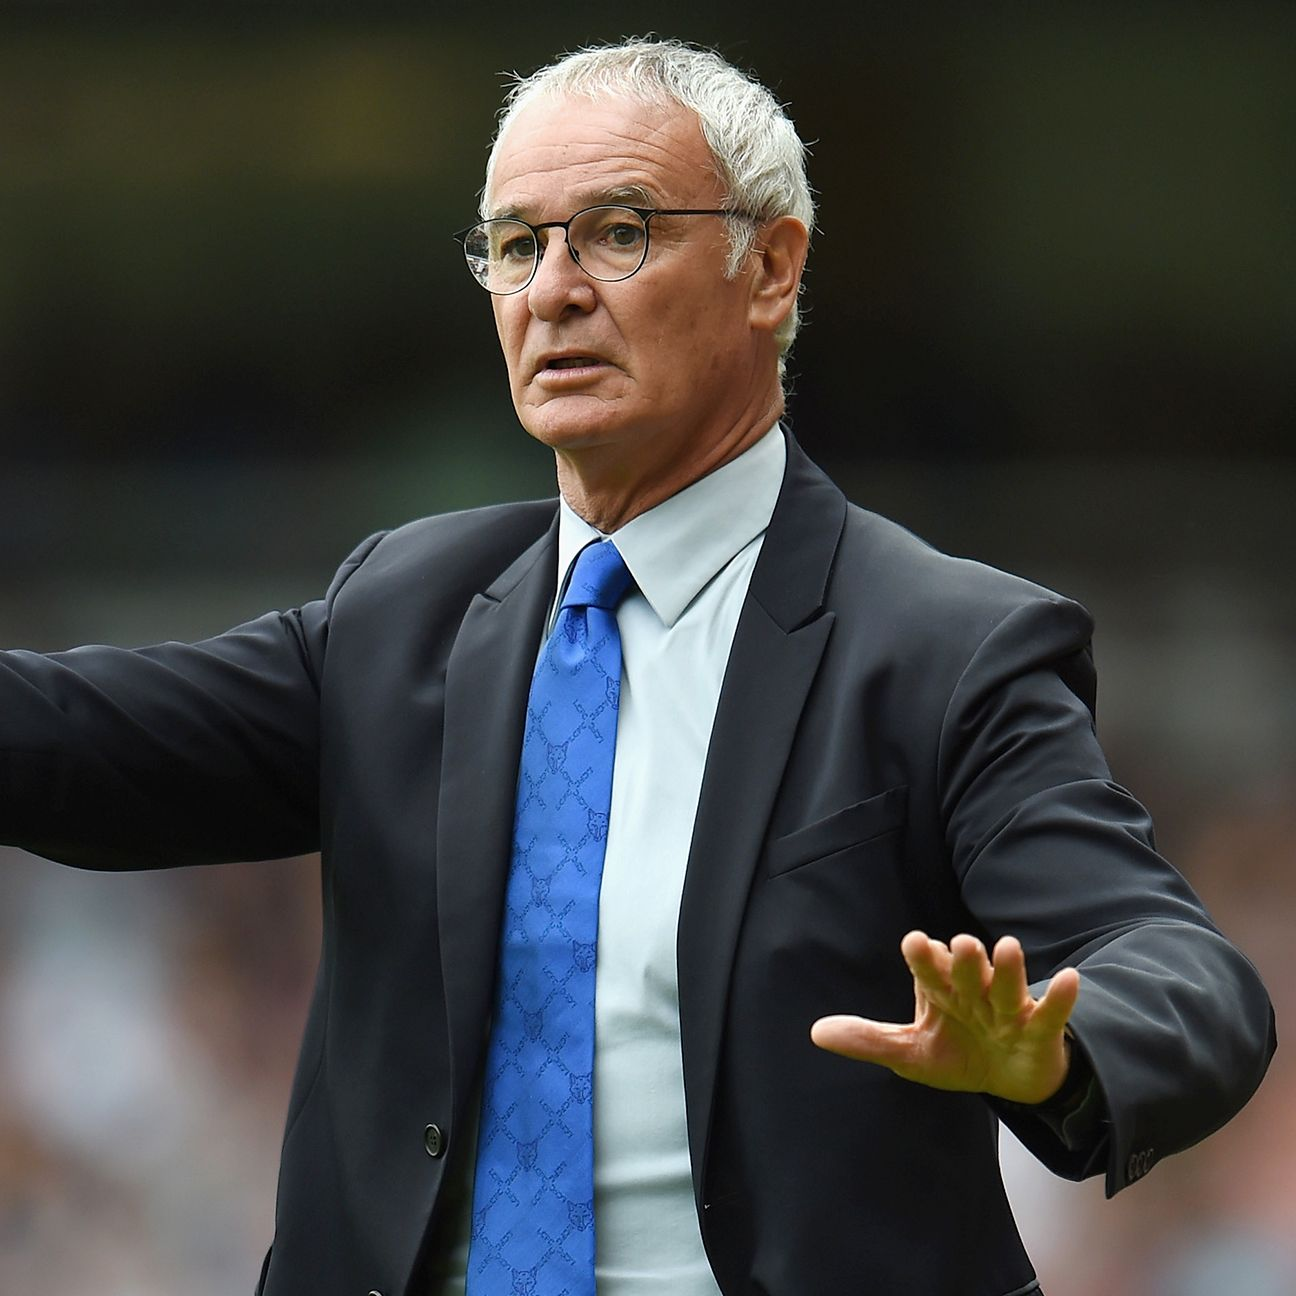 Under Claudio Ranieri, Leicester City have stunned the masses by rising to the top of the Premier League table.